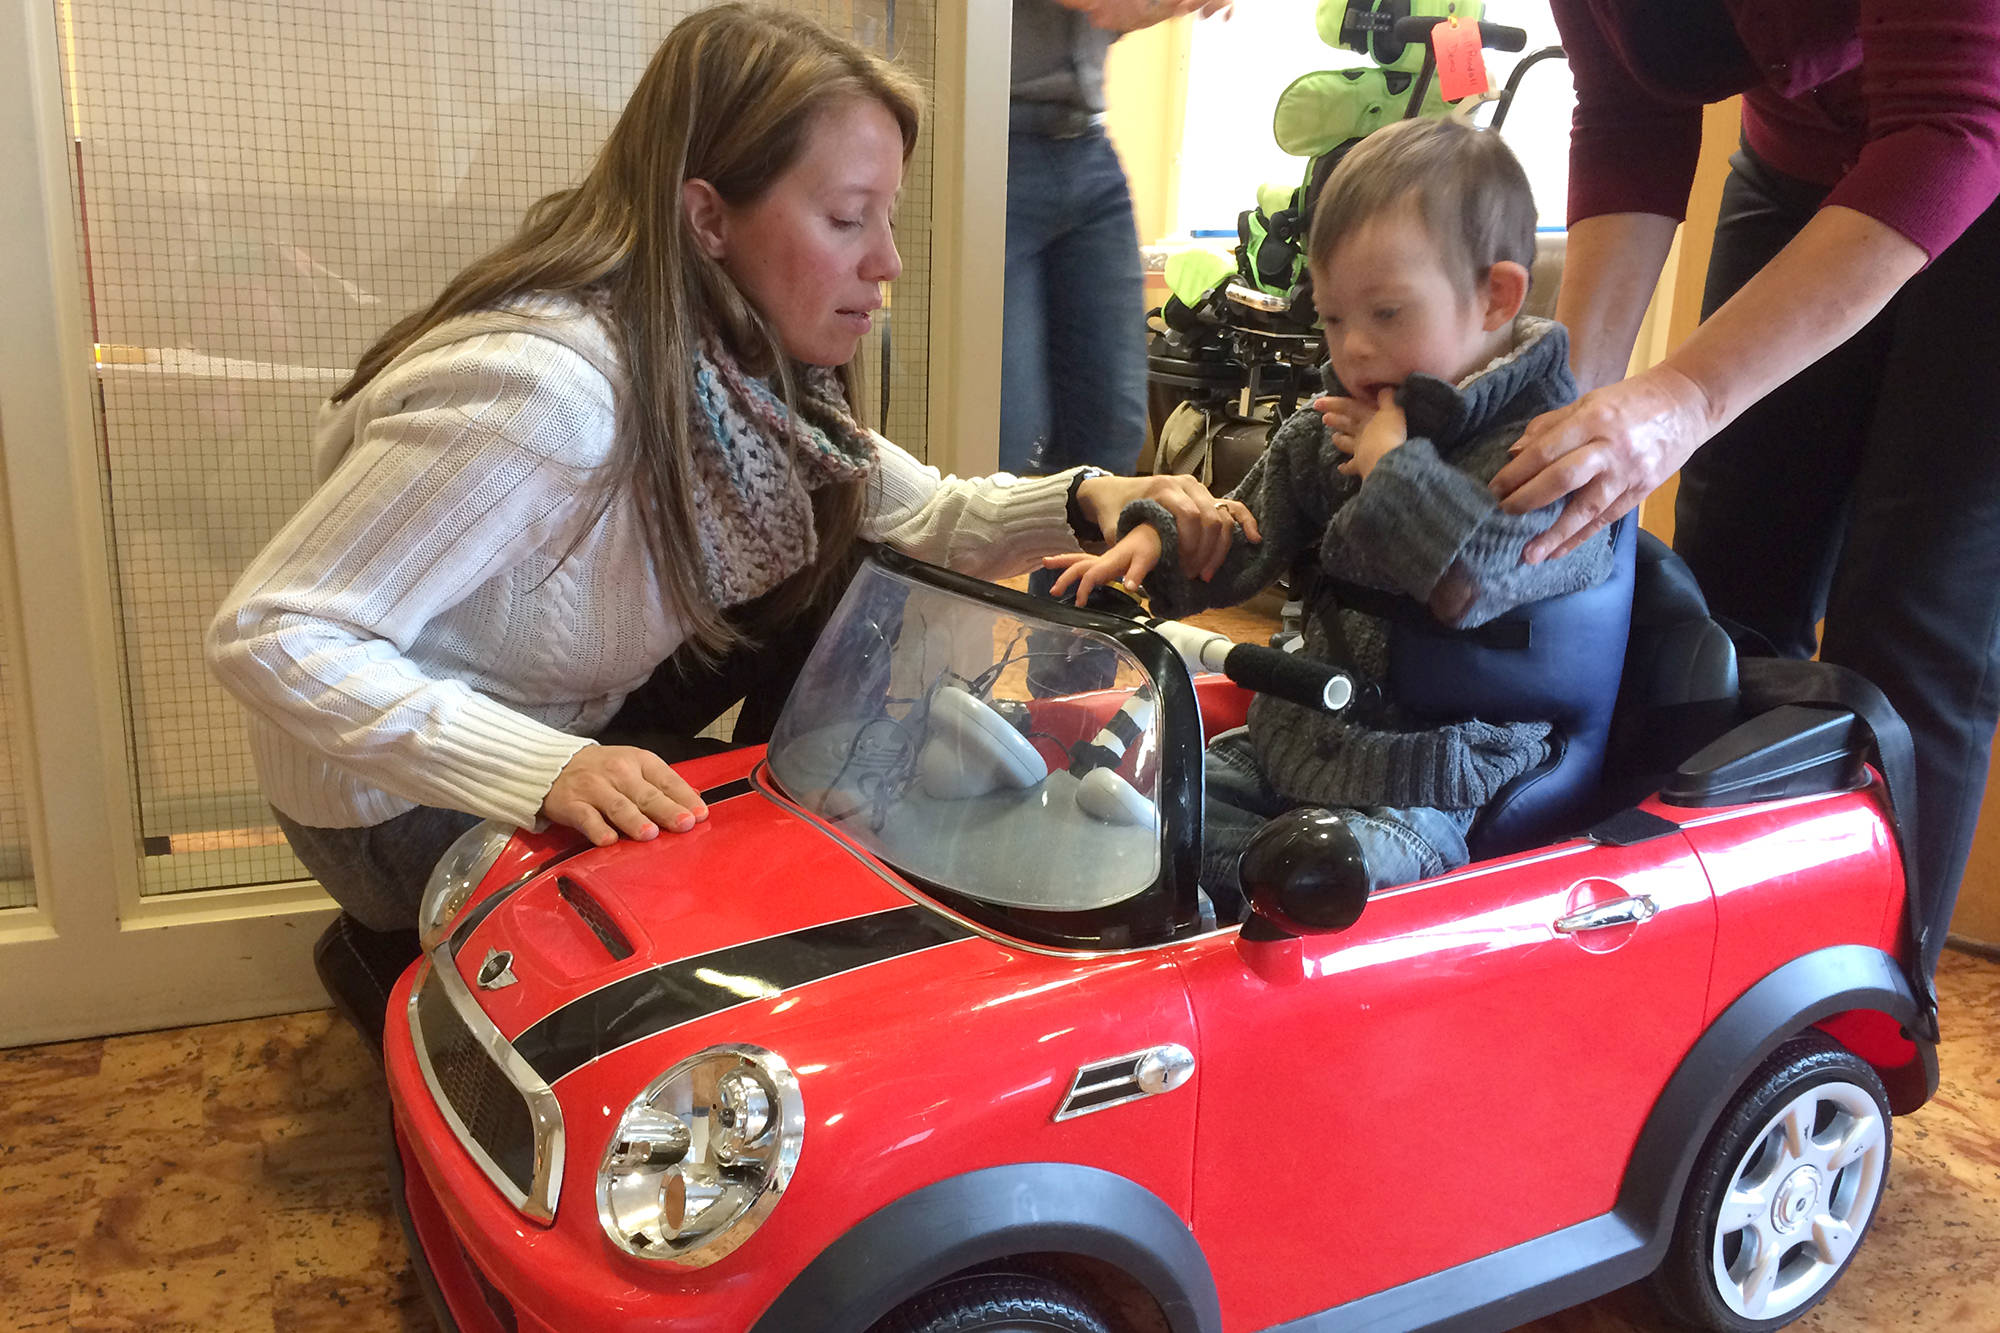 Shuswap Children's Association physiotherapist is Estera Hazlewood is teaching four-year-old Oli Brooks how to push a button on an adaptive car. The association is unable to provideOli with the number of hours he requires for his complex needs. (Zev Tiefenbach photo)